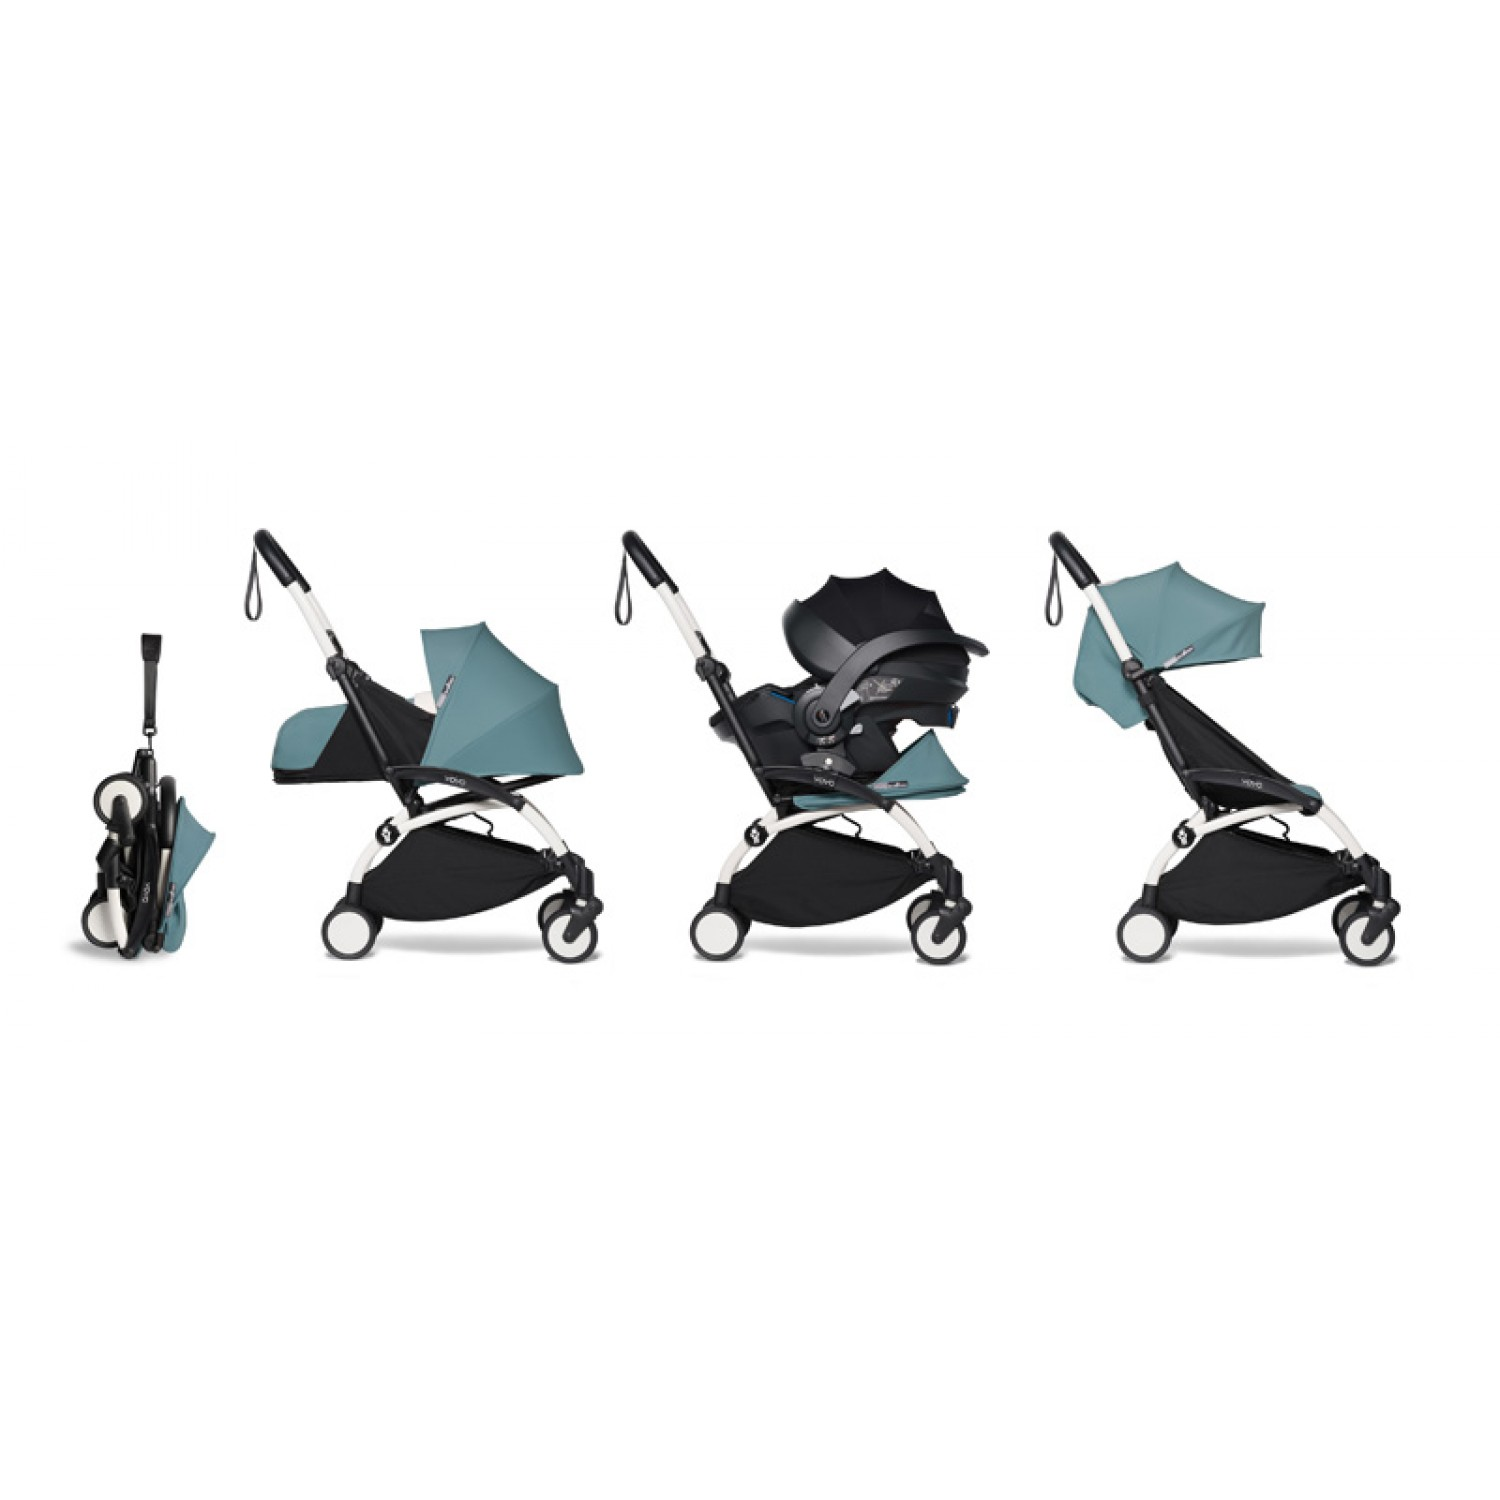 All-in-one BABYZEN stroller YOYO2 0+, car seat and 6+ | White Chassis Aqua